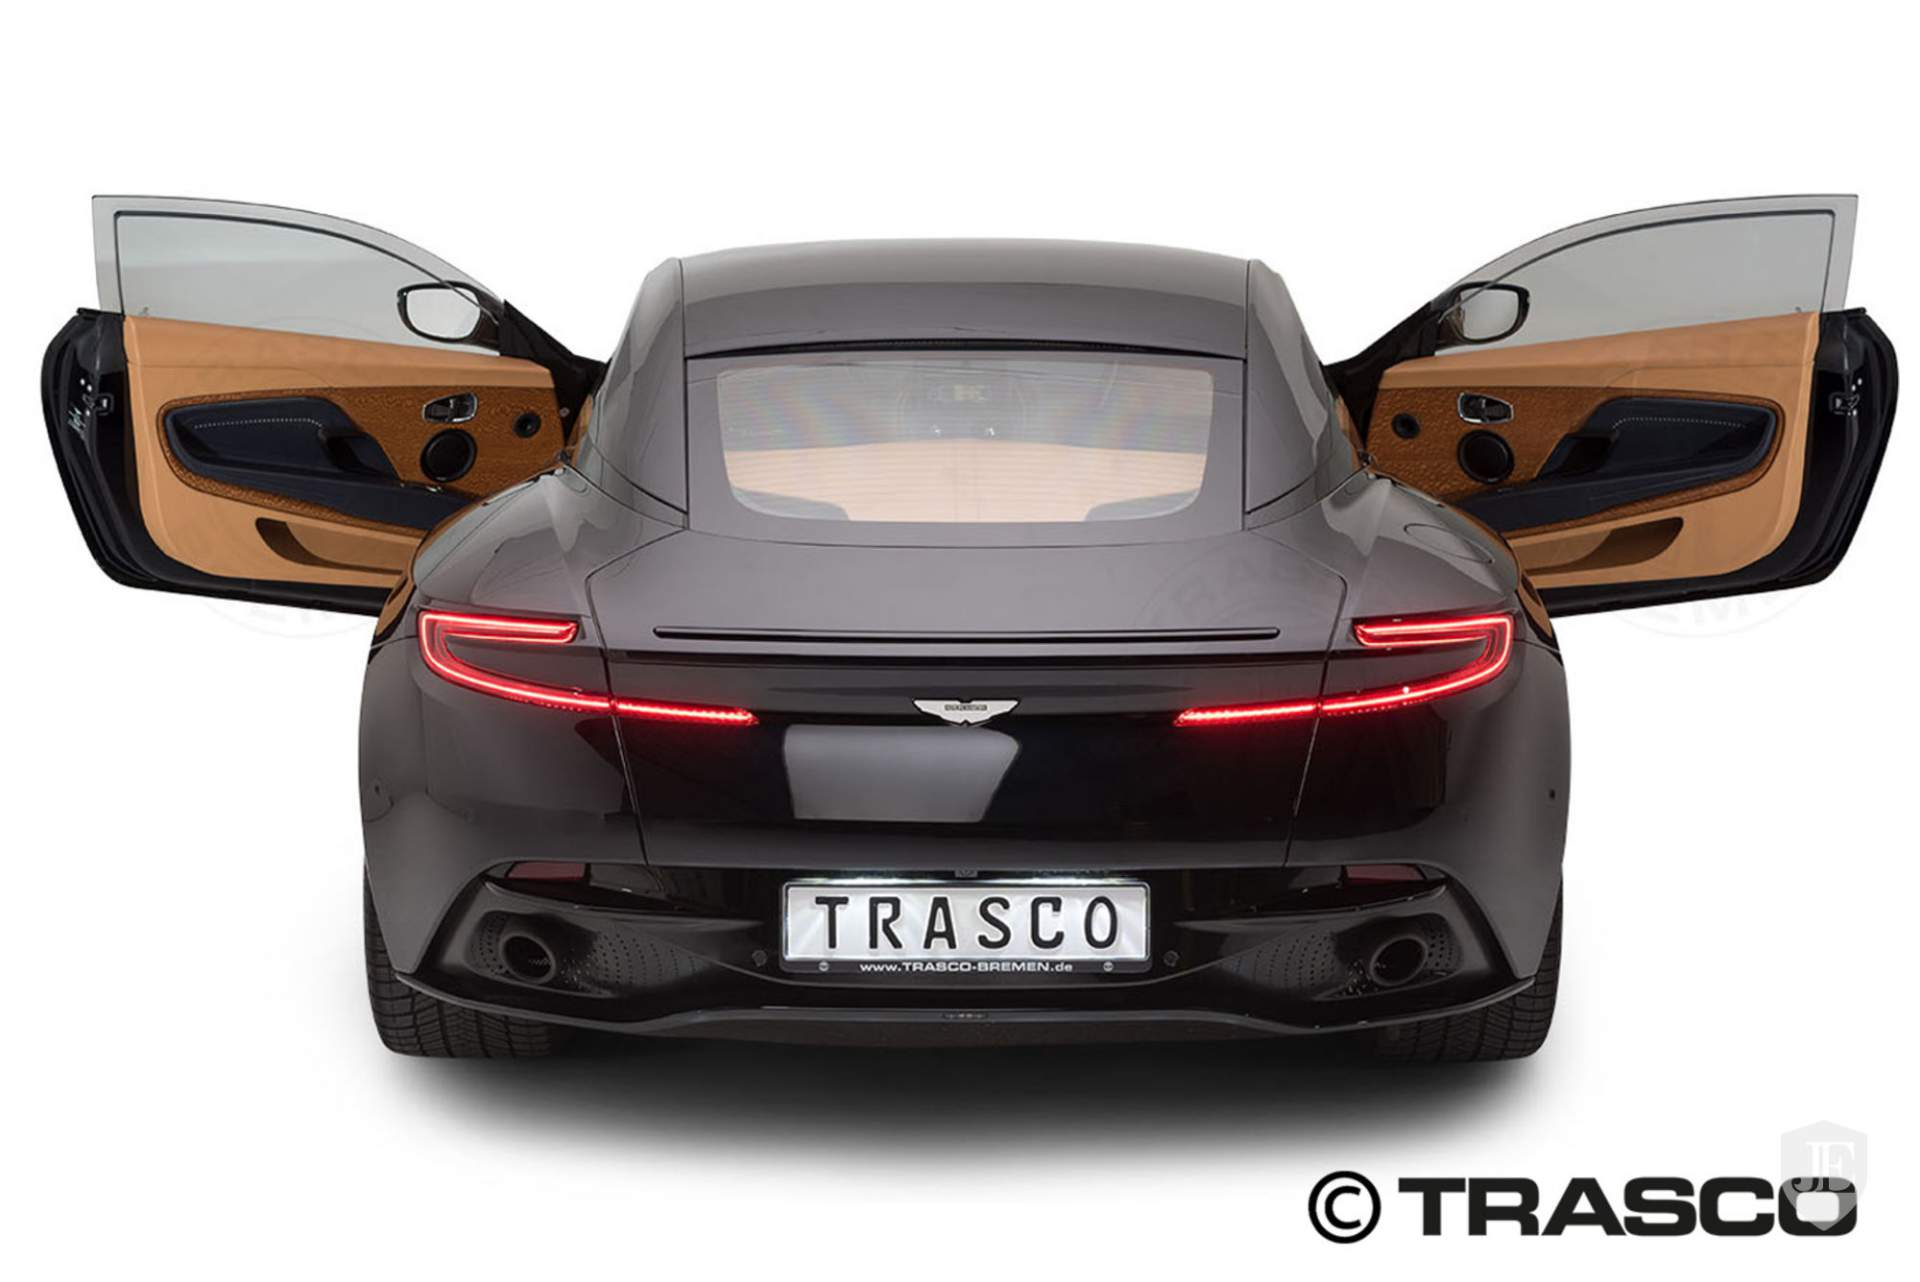 Armored Aston Martin DB11 by Trasco (4)